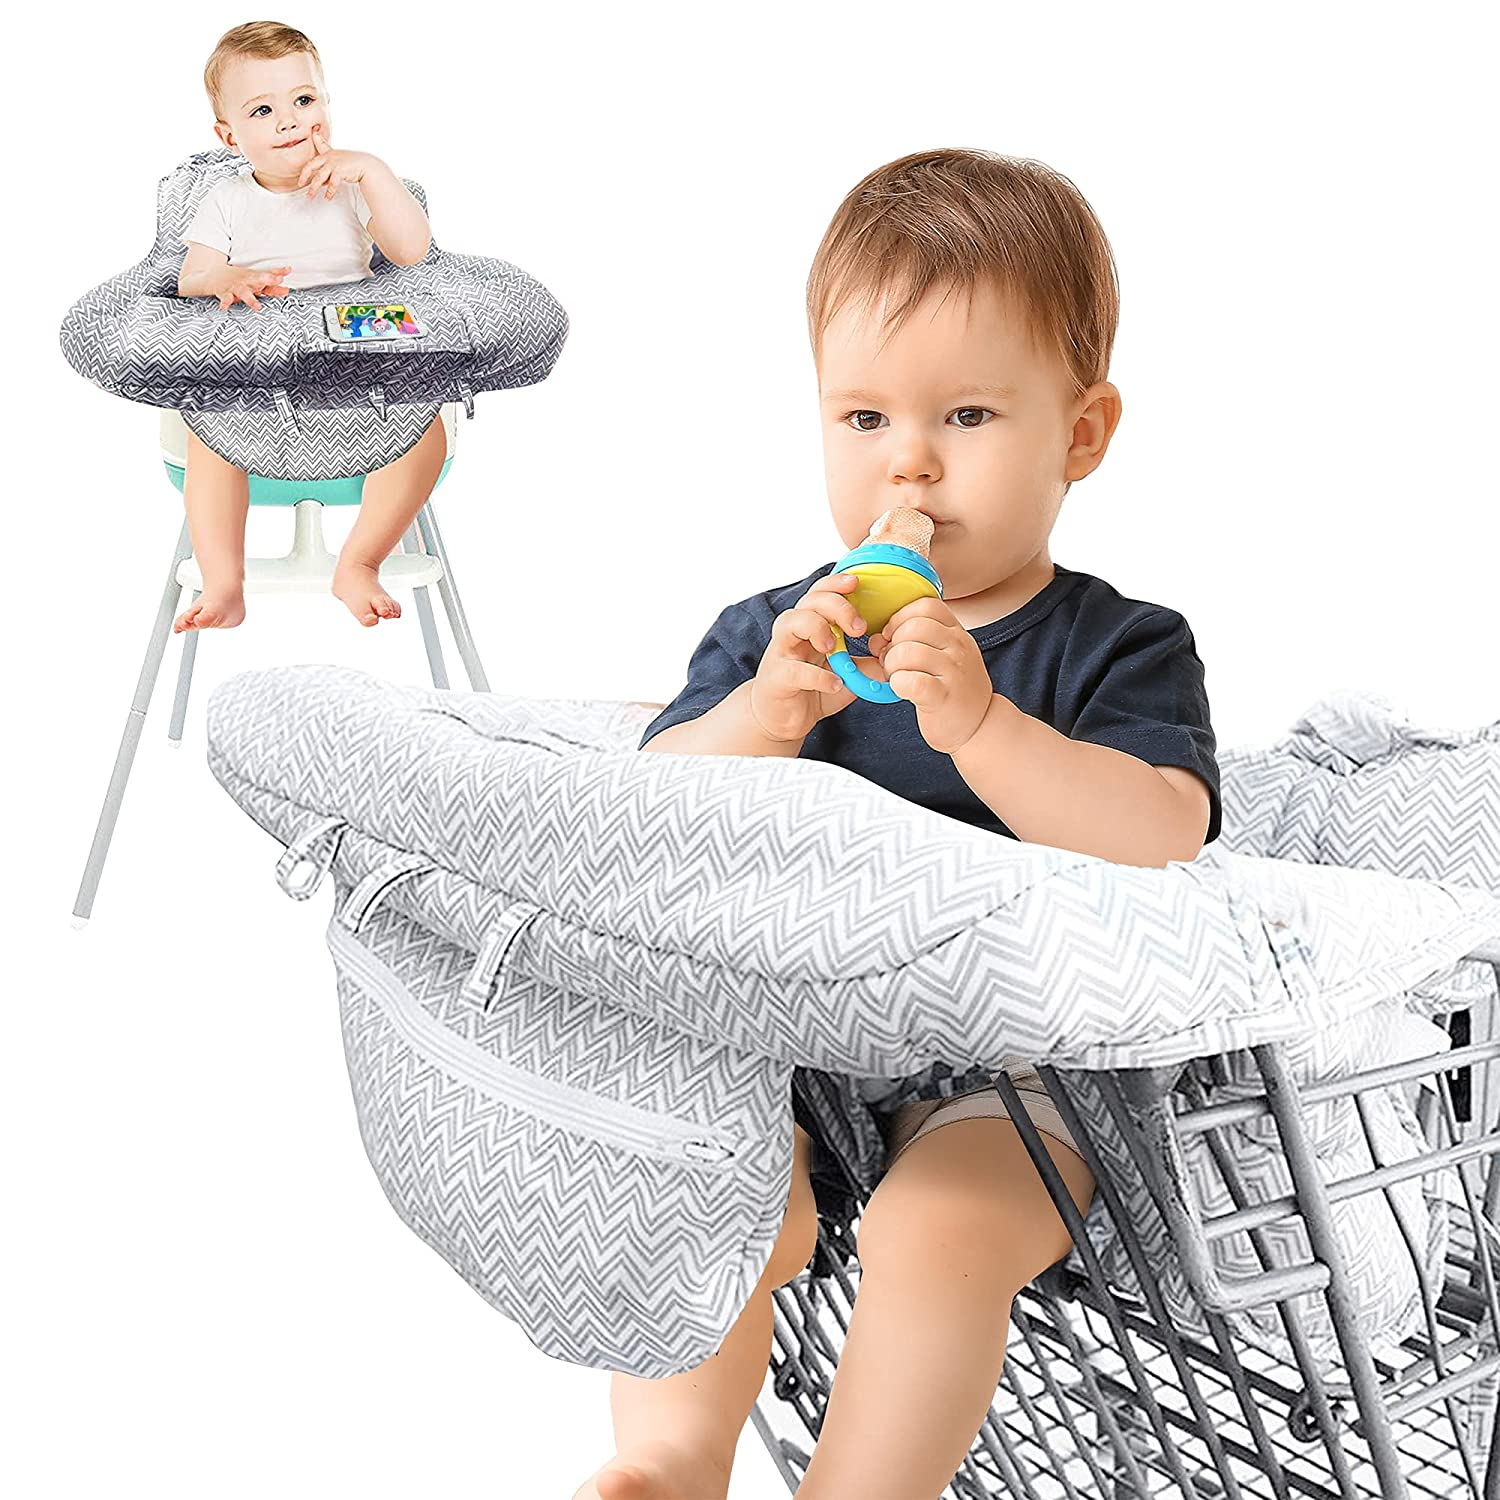 AGUDAN Shopping Cart Cover, High Chair Cover for Baby Foldable Portable Seat with Bag for Infant, Machine Washable